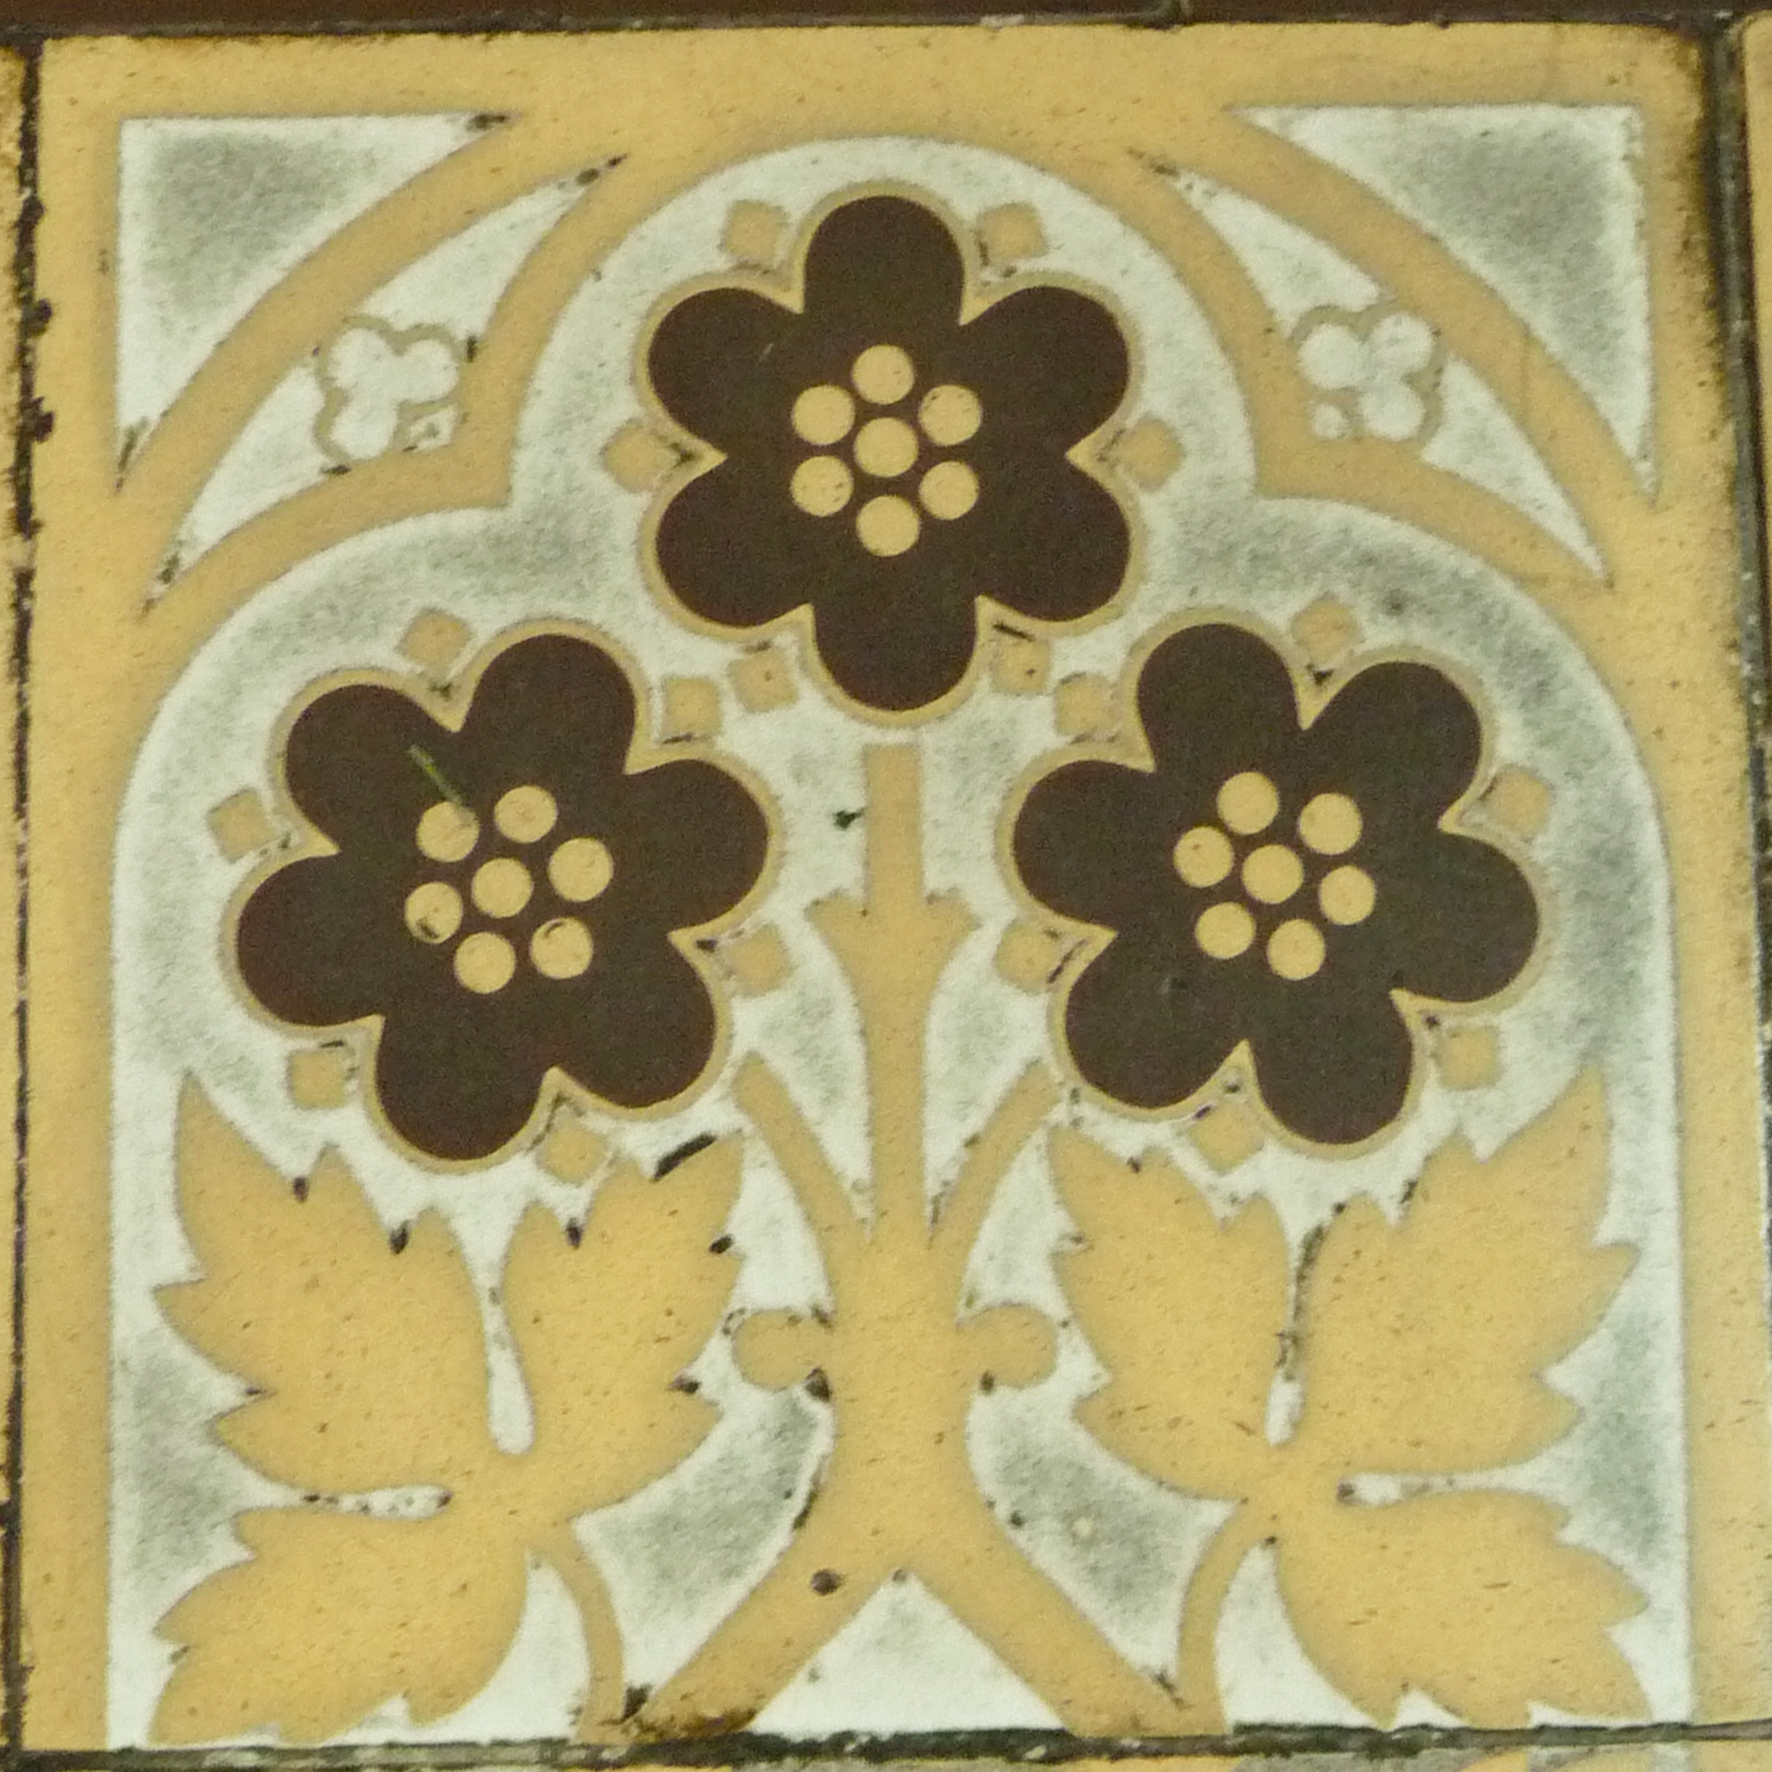 Encaustic tiles designed by Pugin in St Mary's Convent, Handsworth.